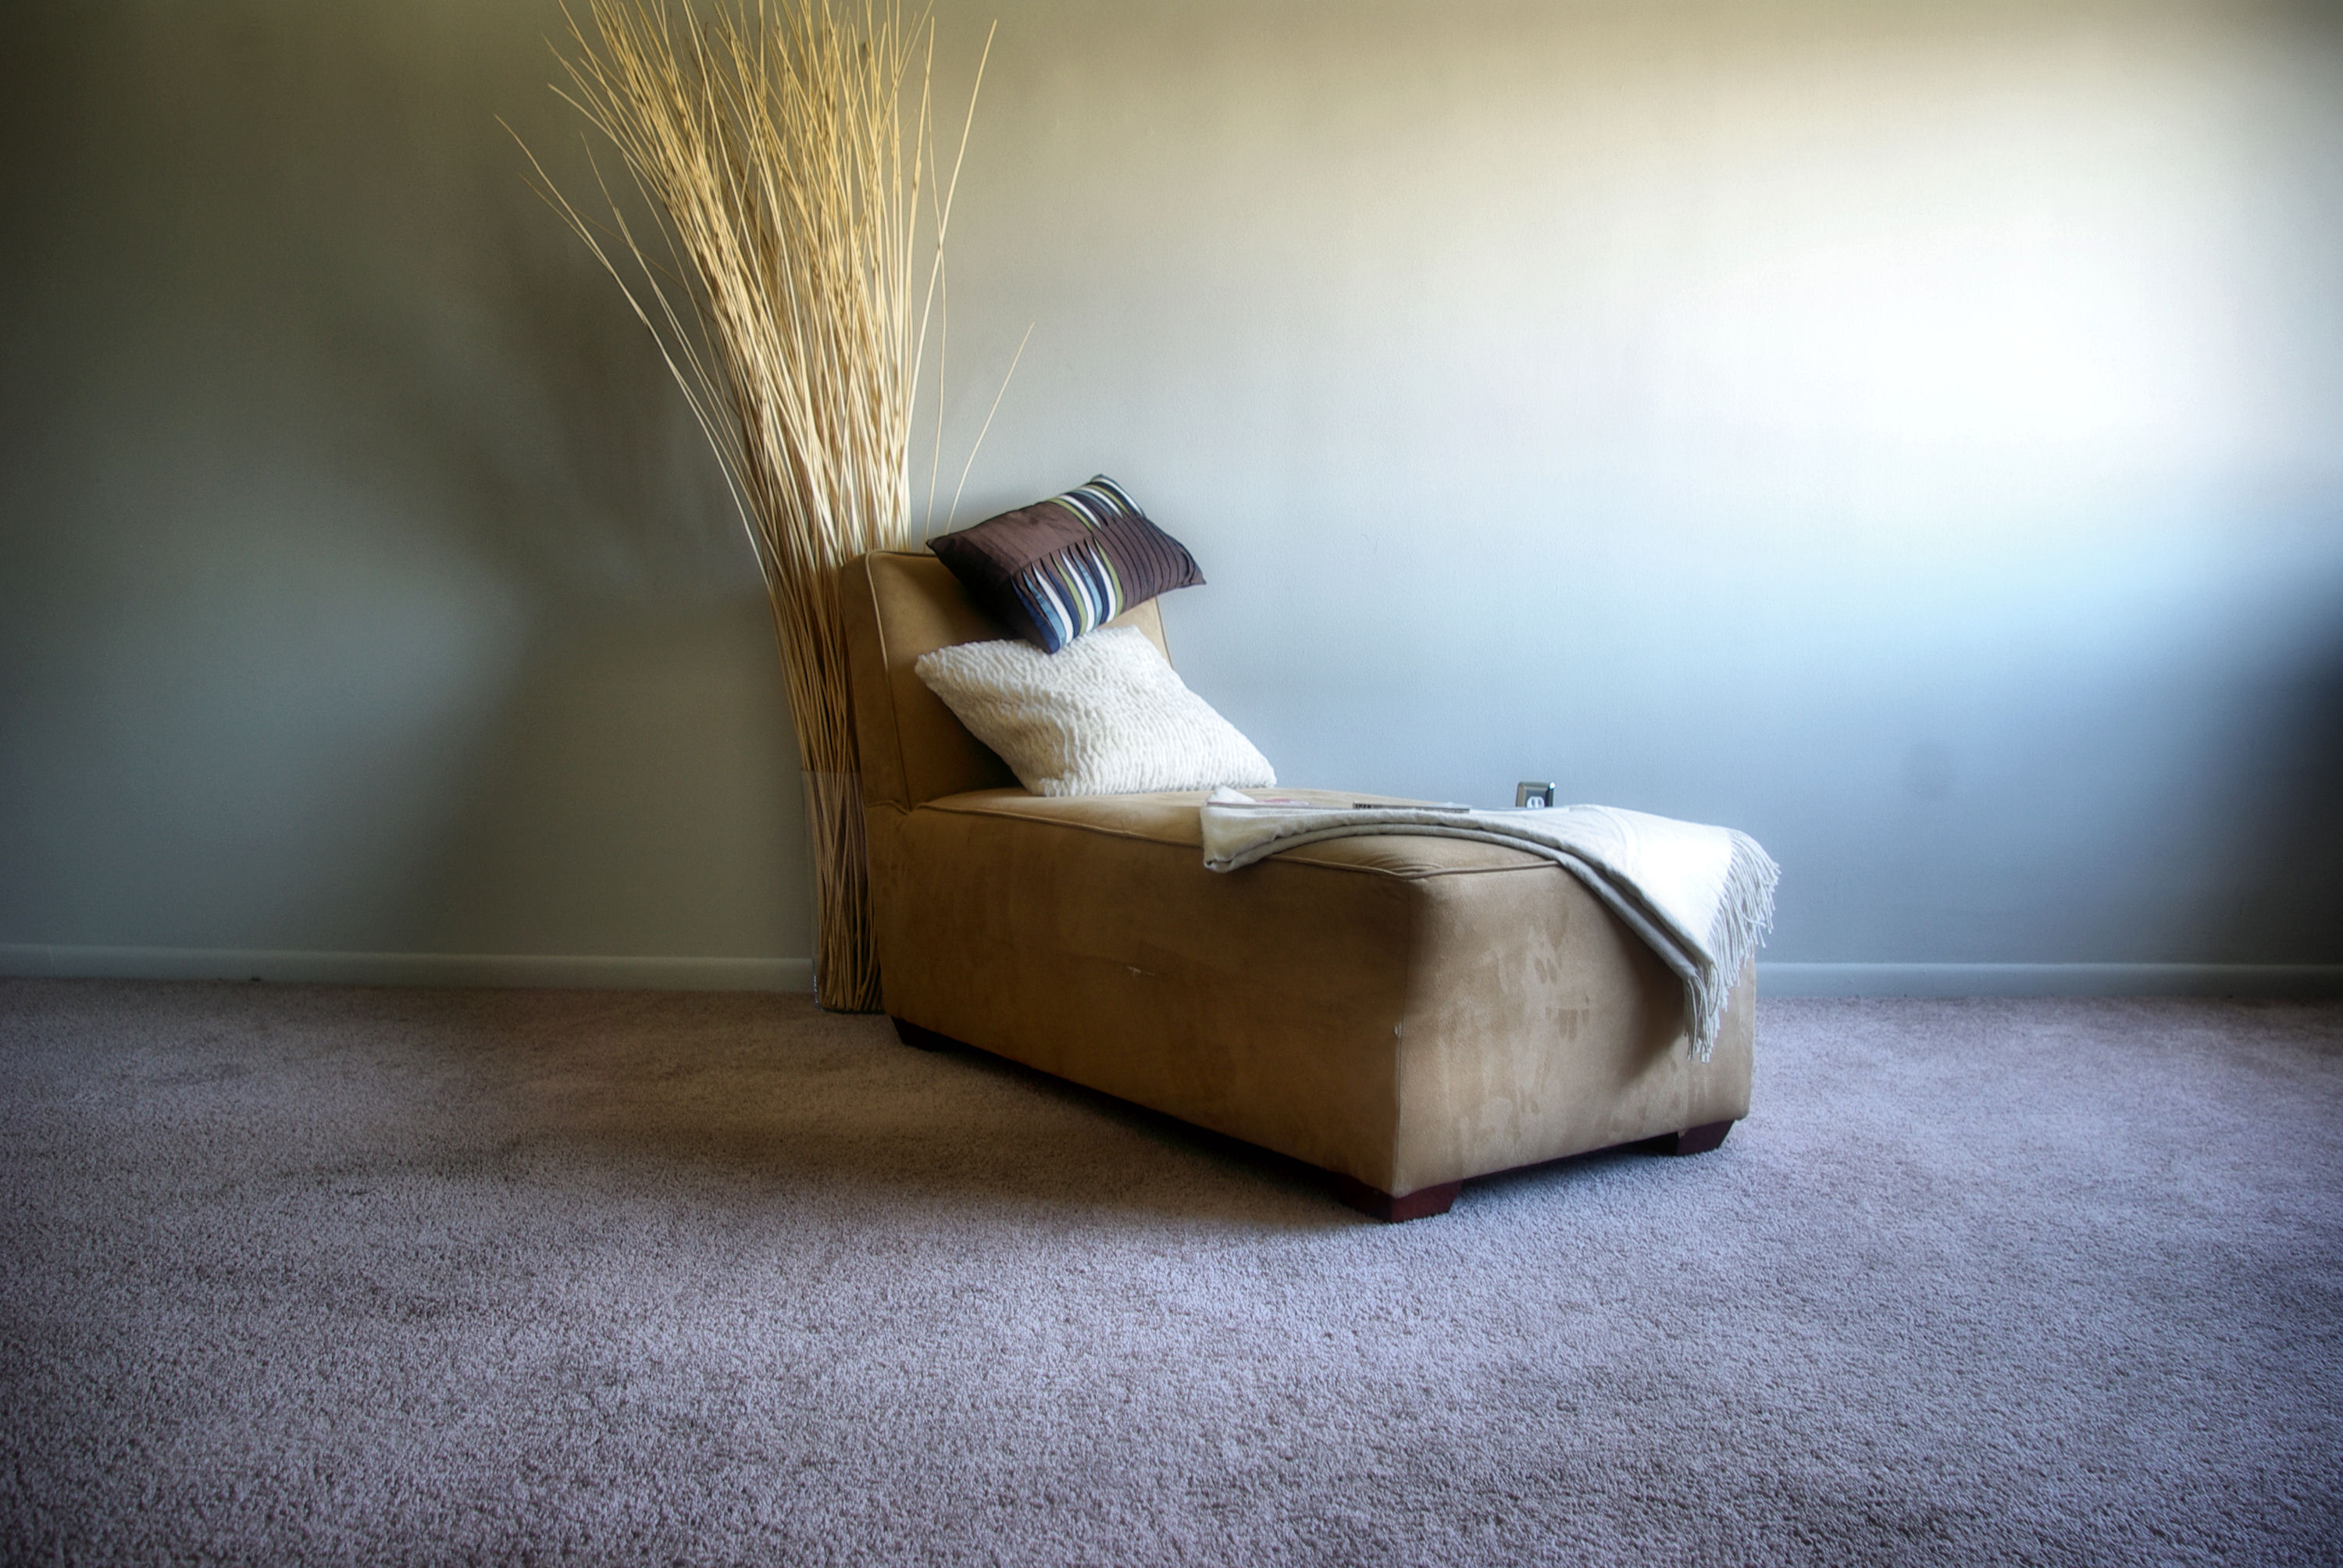 SPRING CLEANING IN A SNAP: Clean the Carpets